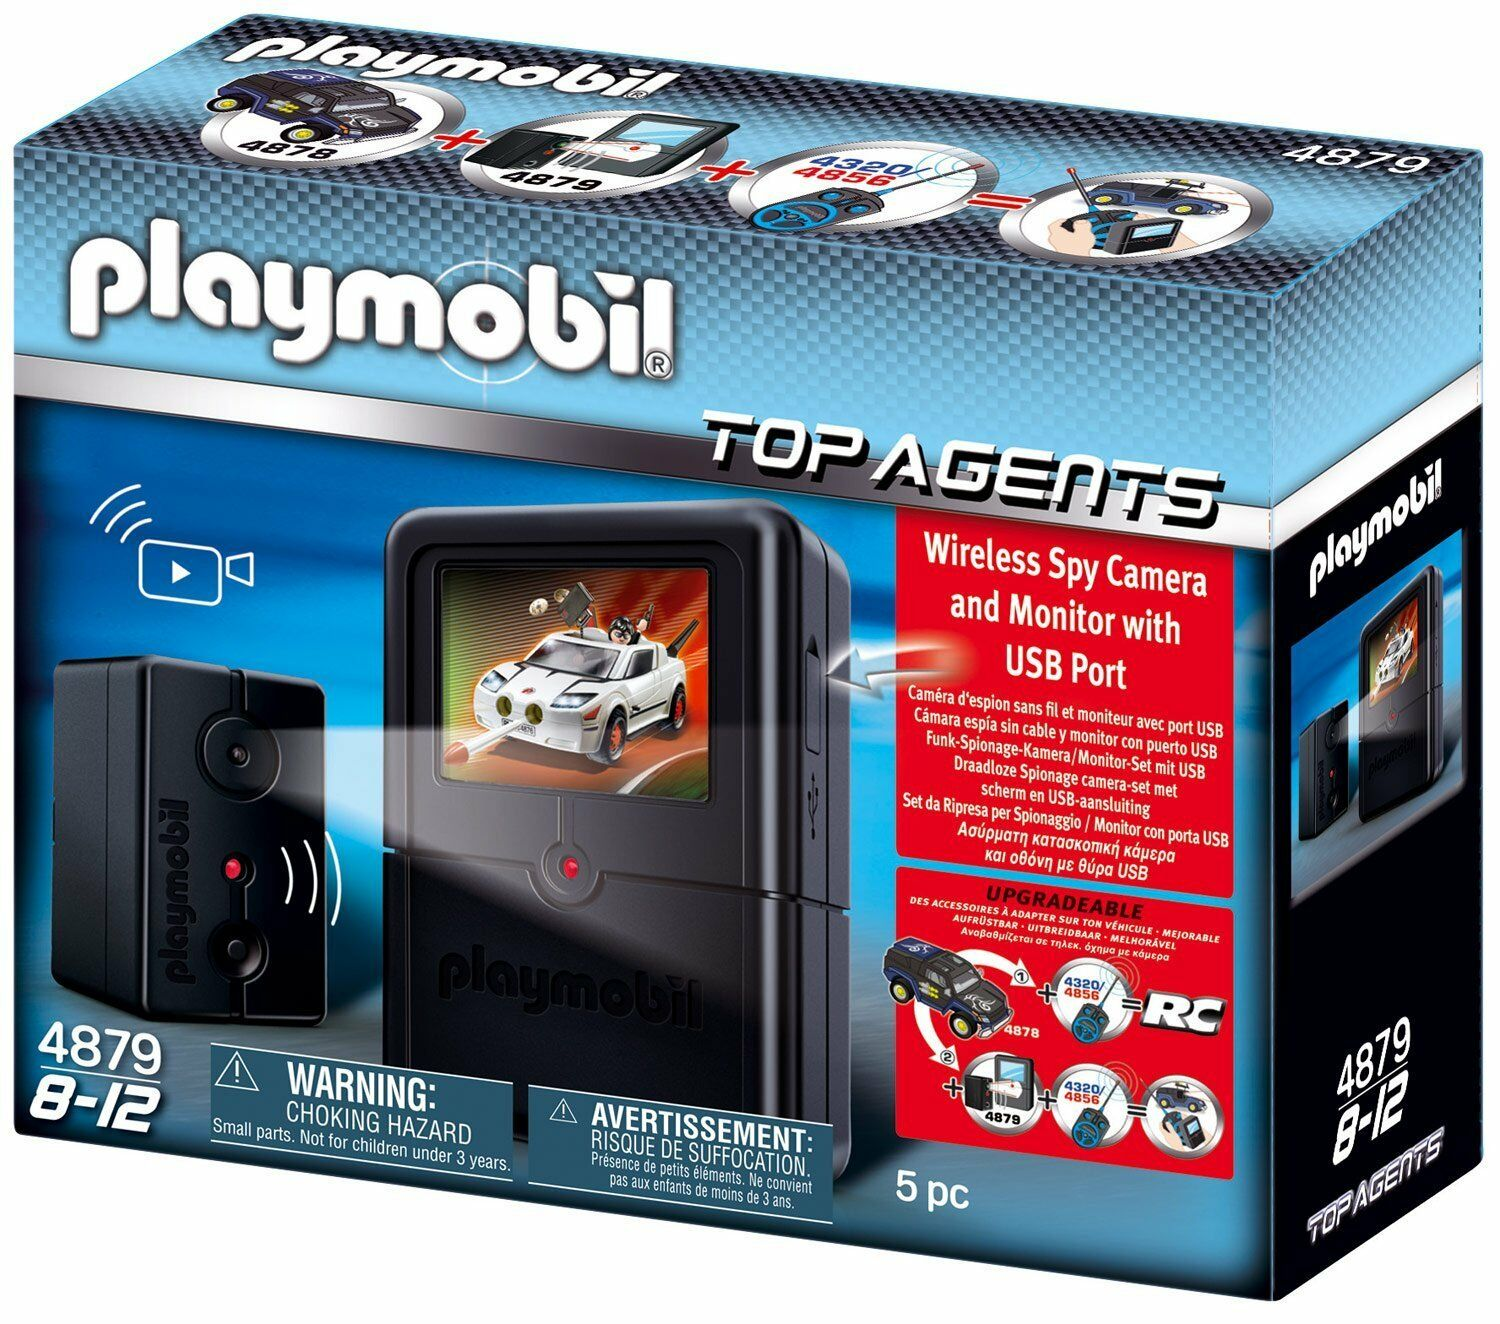 Playmobil 4879, Espionage Camera Set, New Ovp